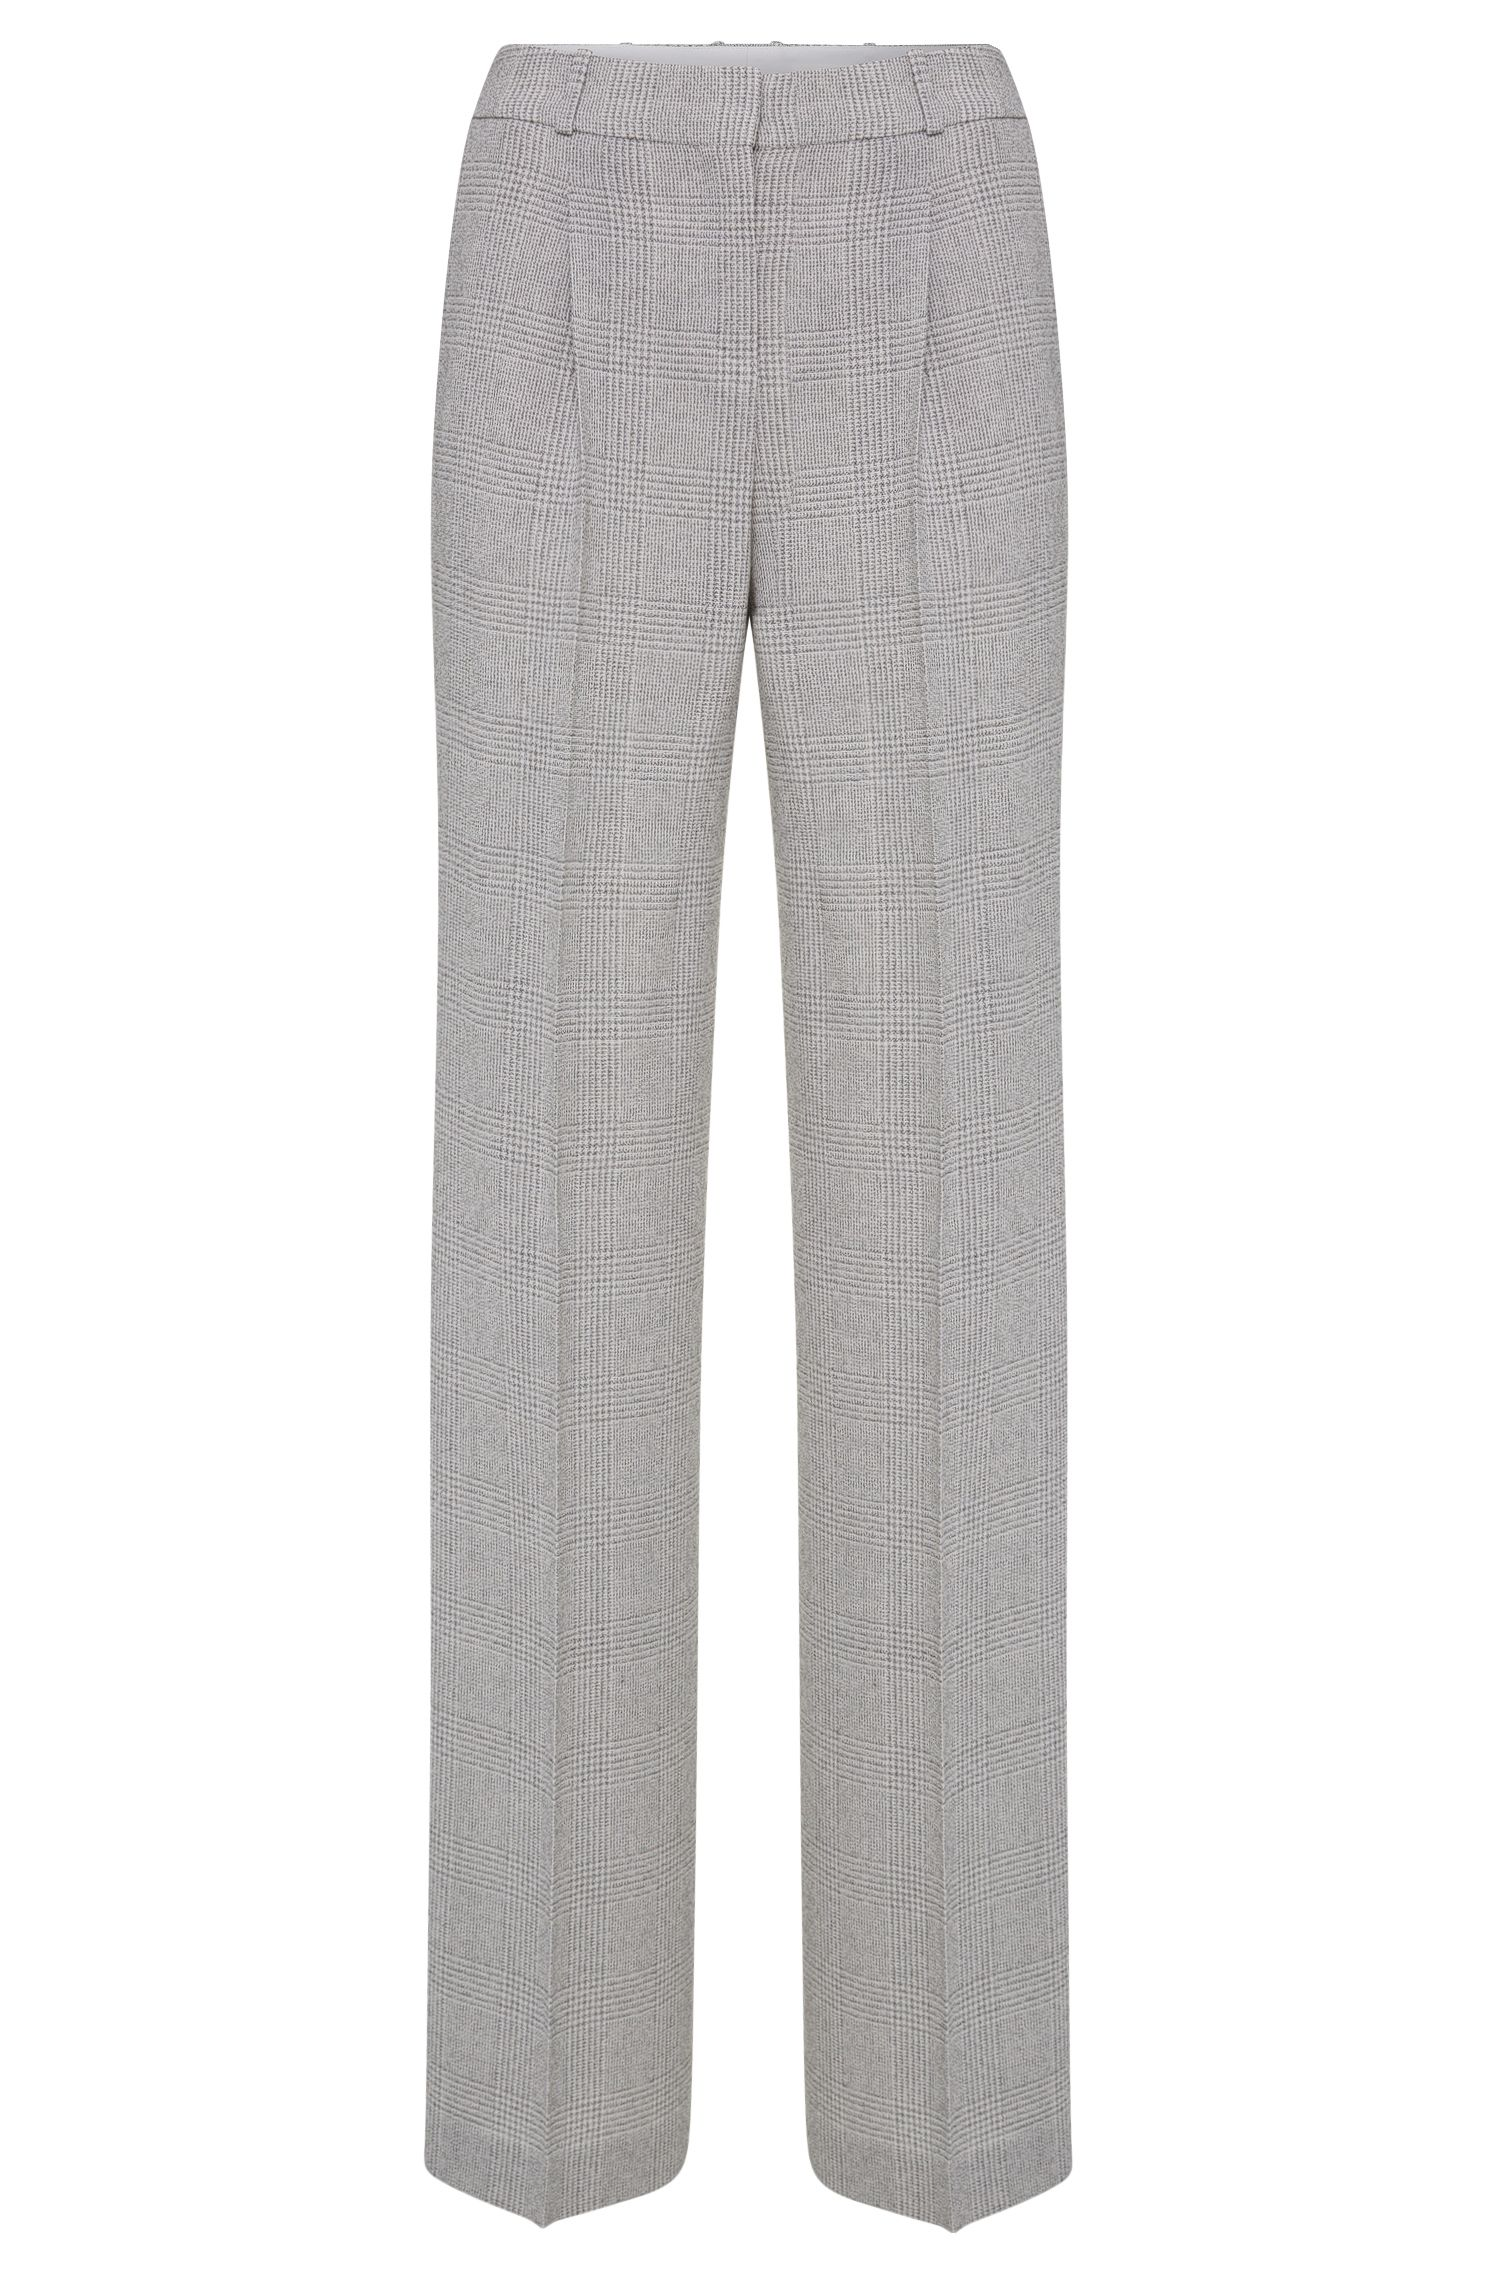 Relaxed-Fit Hose aus Schurwolle mit Glencheck-Muster: 'Tewena'